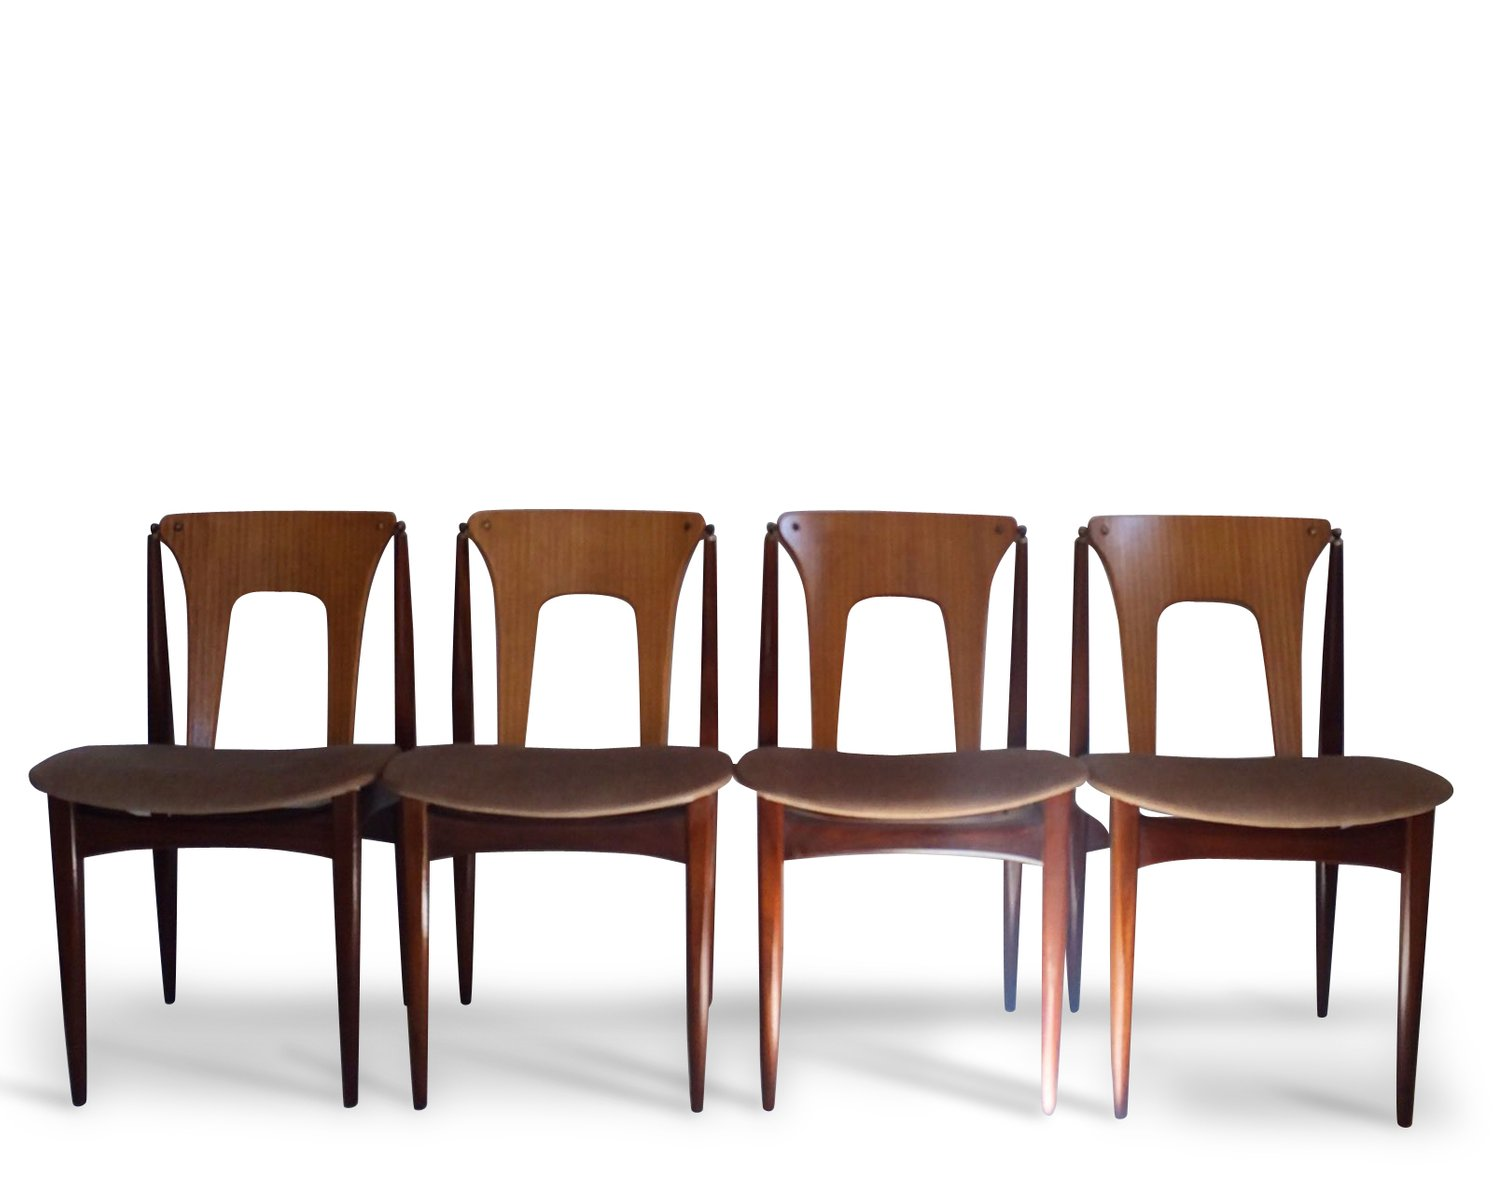 We Re Crushing On The Primitive Country Decor In This City: Mid-Century Dining Chairs By Elliotts Of Newbury, Set Of 4